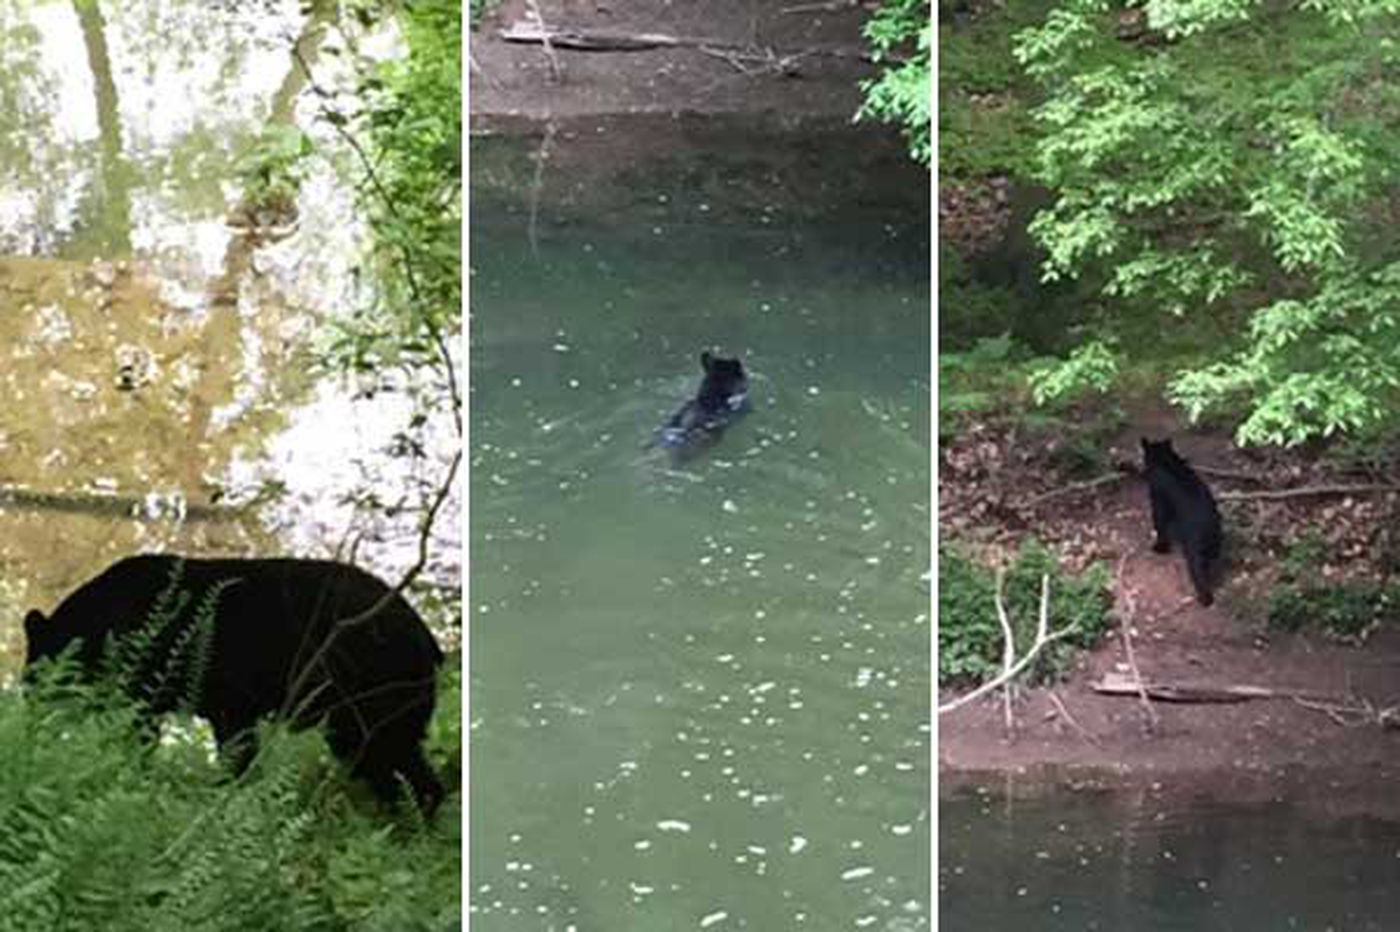 After dip in the Wissahickon, where did black bear go?